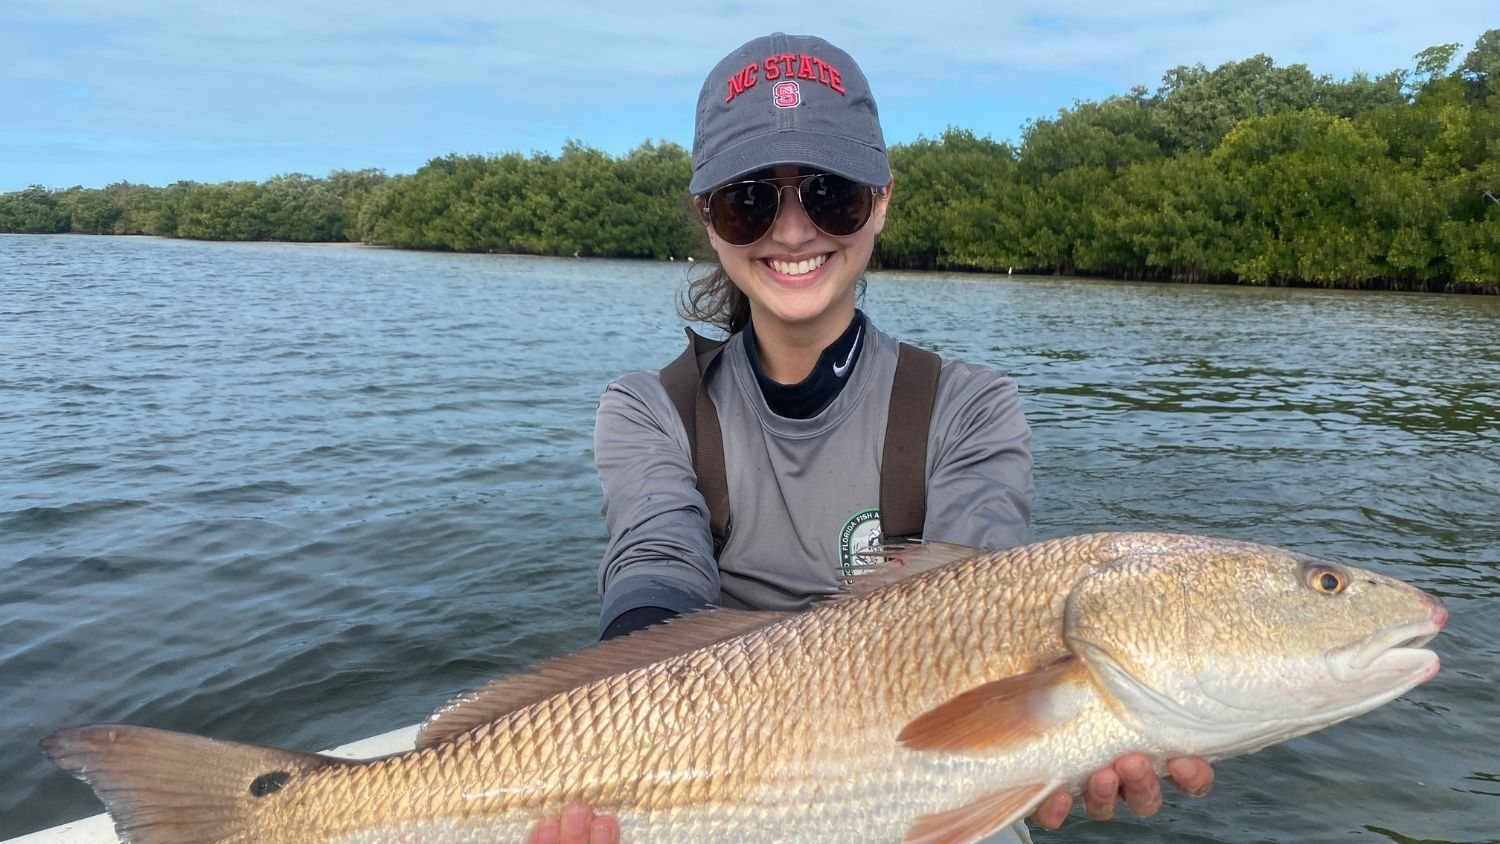 Doris Duke Scholar Sasha Pereira is Studying the Role of Spring-Fed Streams in Trout Reproduction, College of Natural Resources, Sasha Pereira, courtesy John Davis, feature